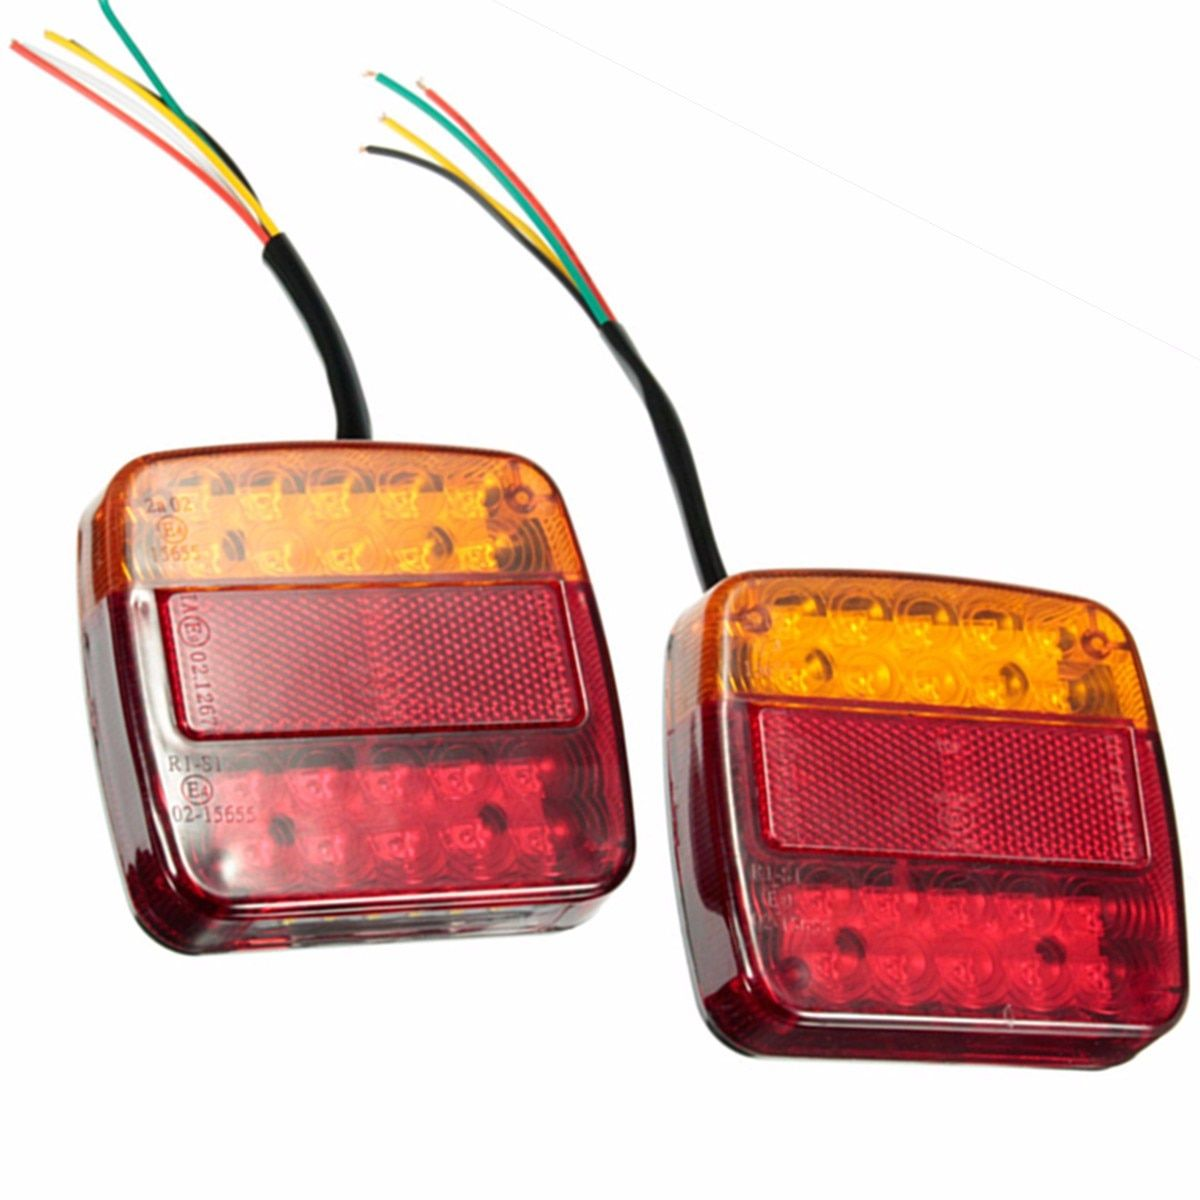 1 Pair New Car 12V 20LED Trailer Tail Light Left and Right Taillight Truck Car Van Lamp